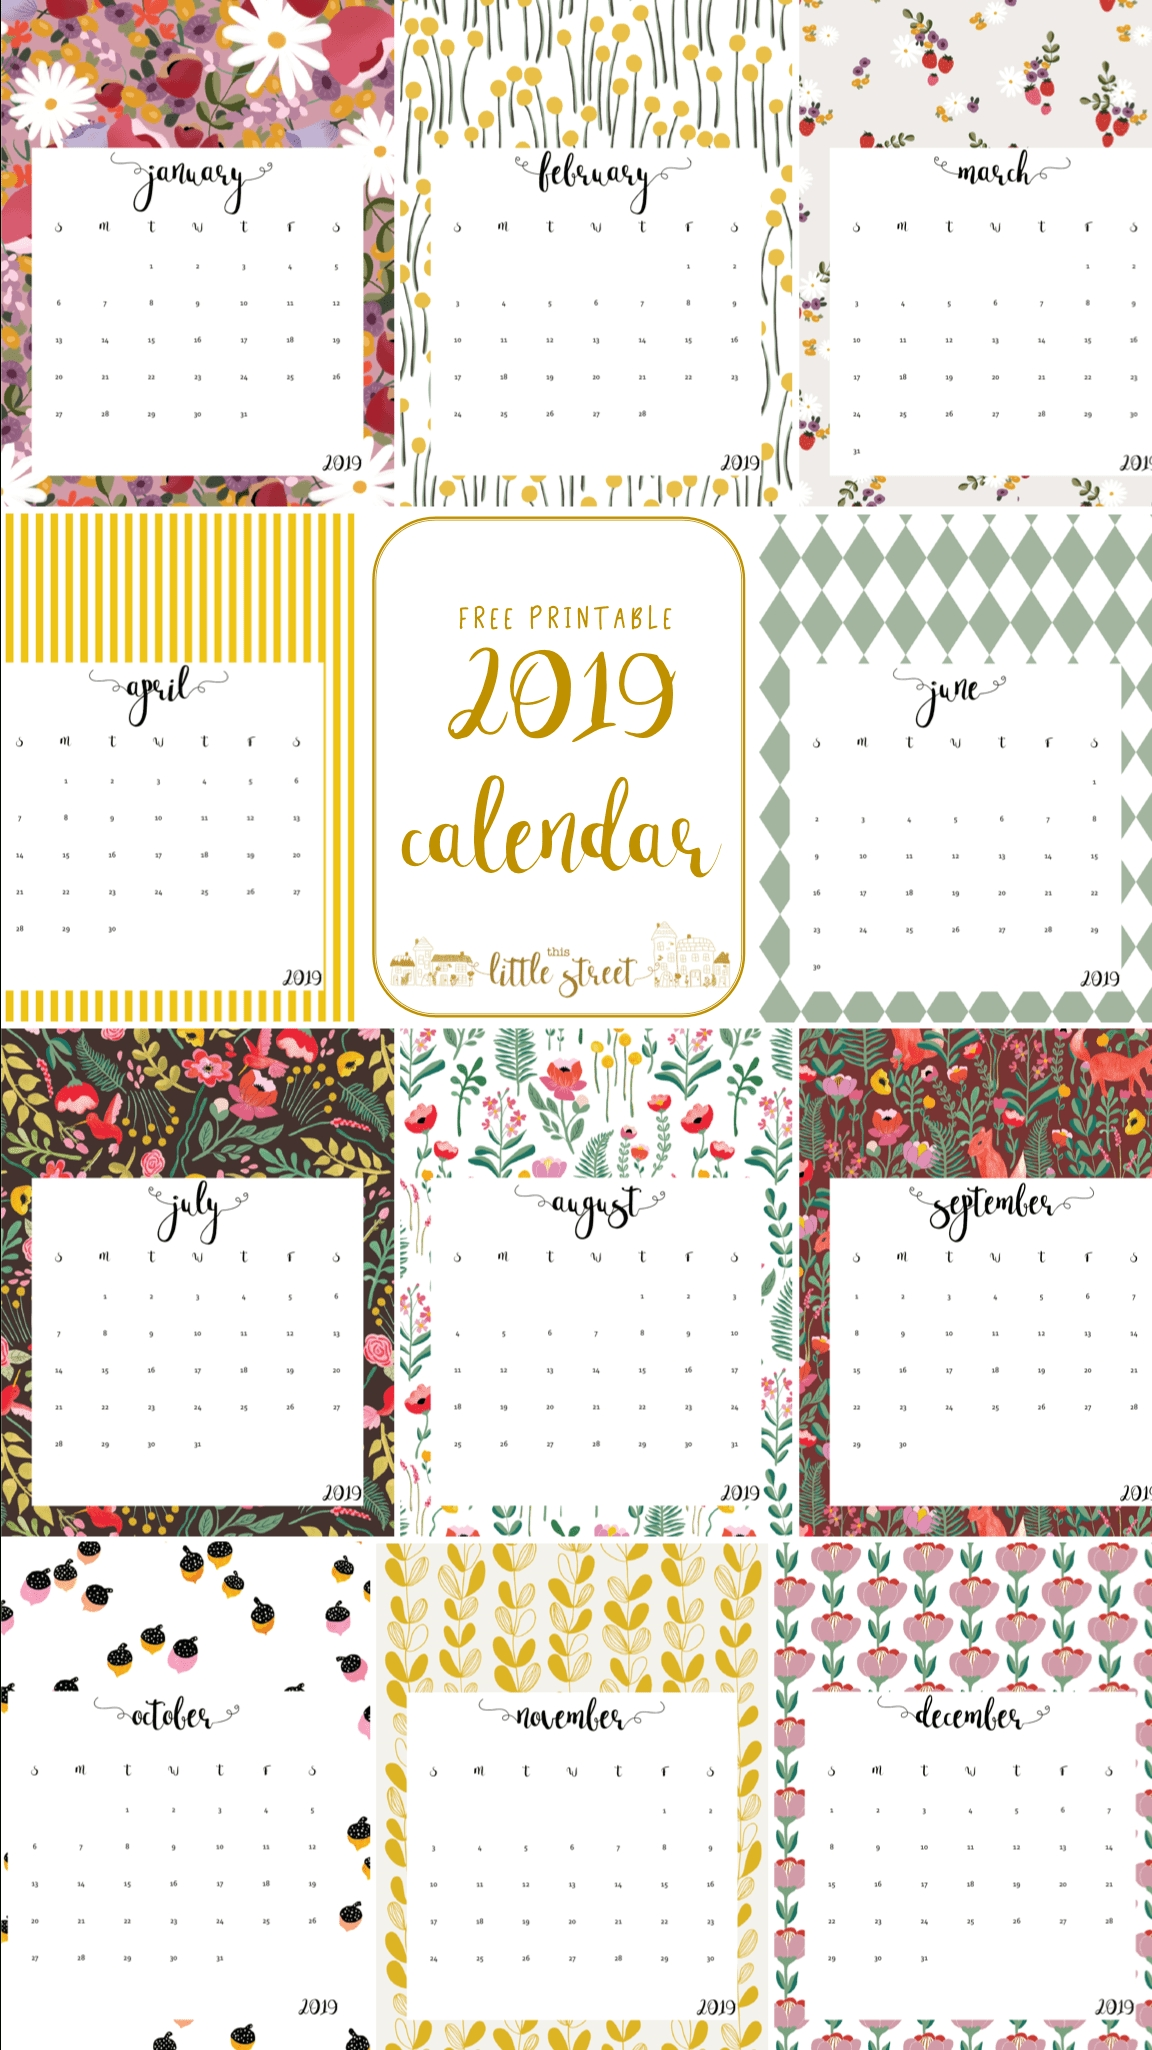 20 Free Printable Calendars For 2020 Yesmissy | Free